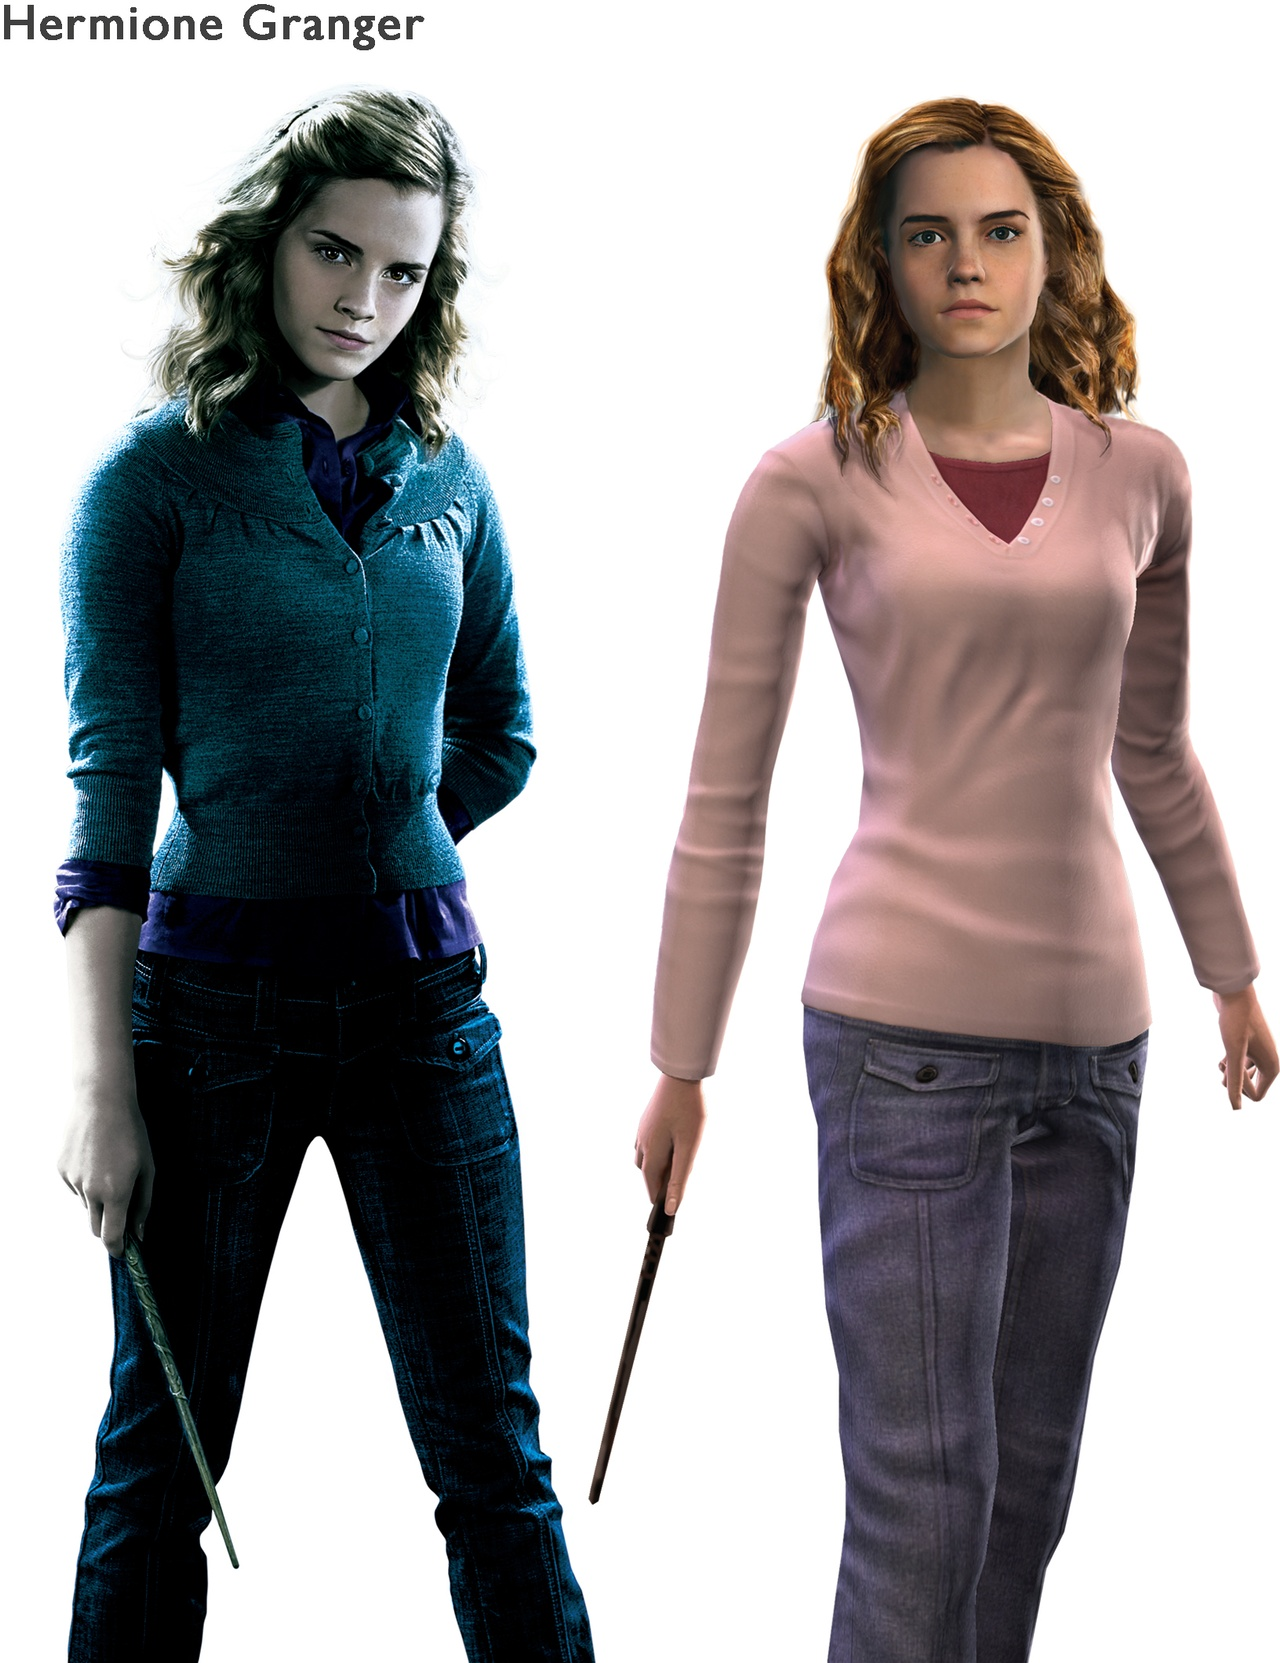 harry_potter_and_the_half-blood_prince-34.jpg - Harry Potter and the Half-Blood Prince